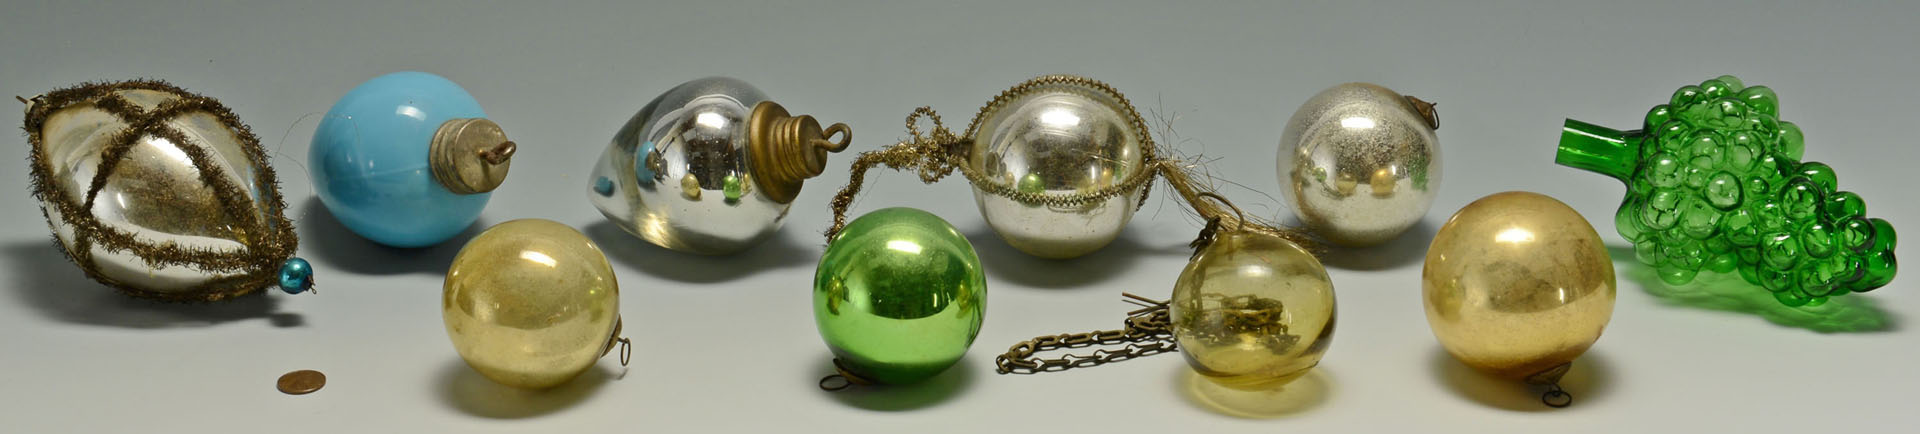 Lot 598: Grouping of Early Kugels and other ornaments, 10